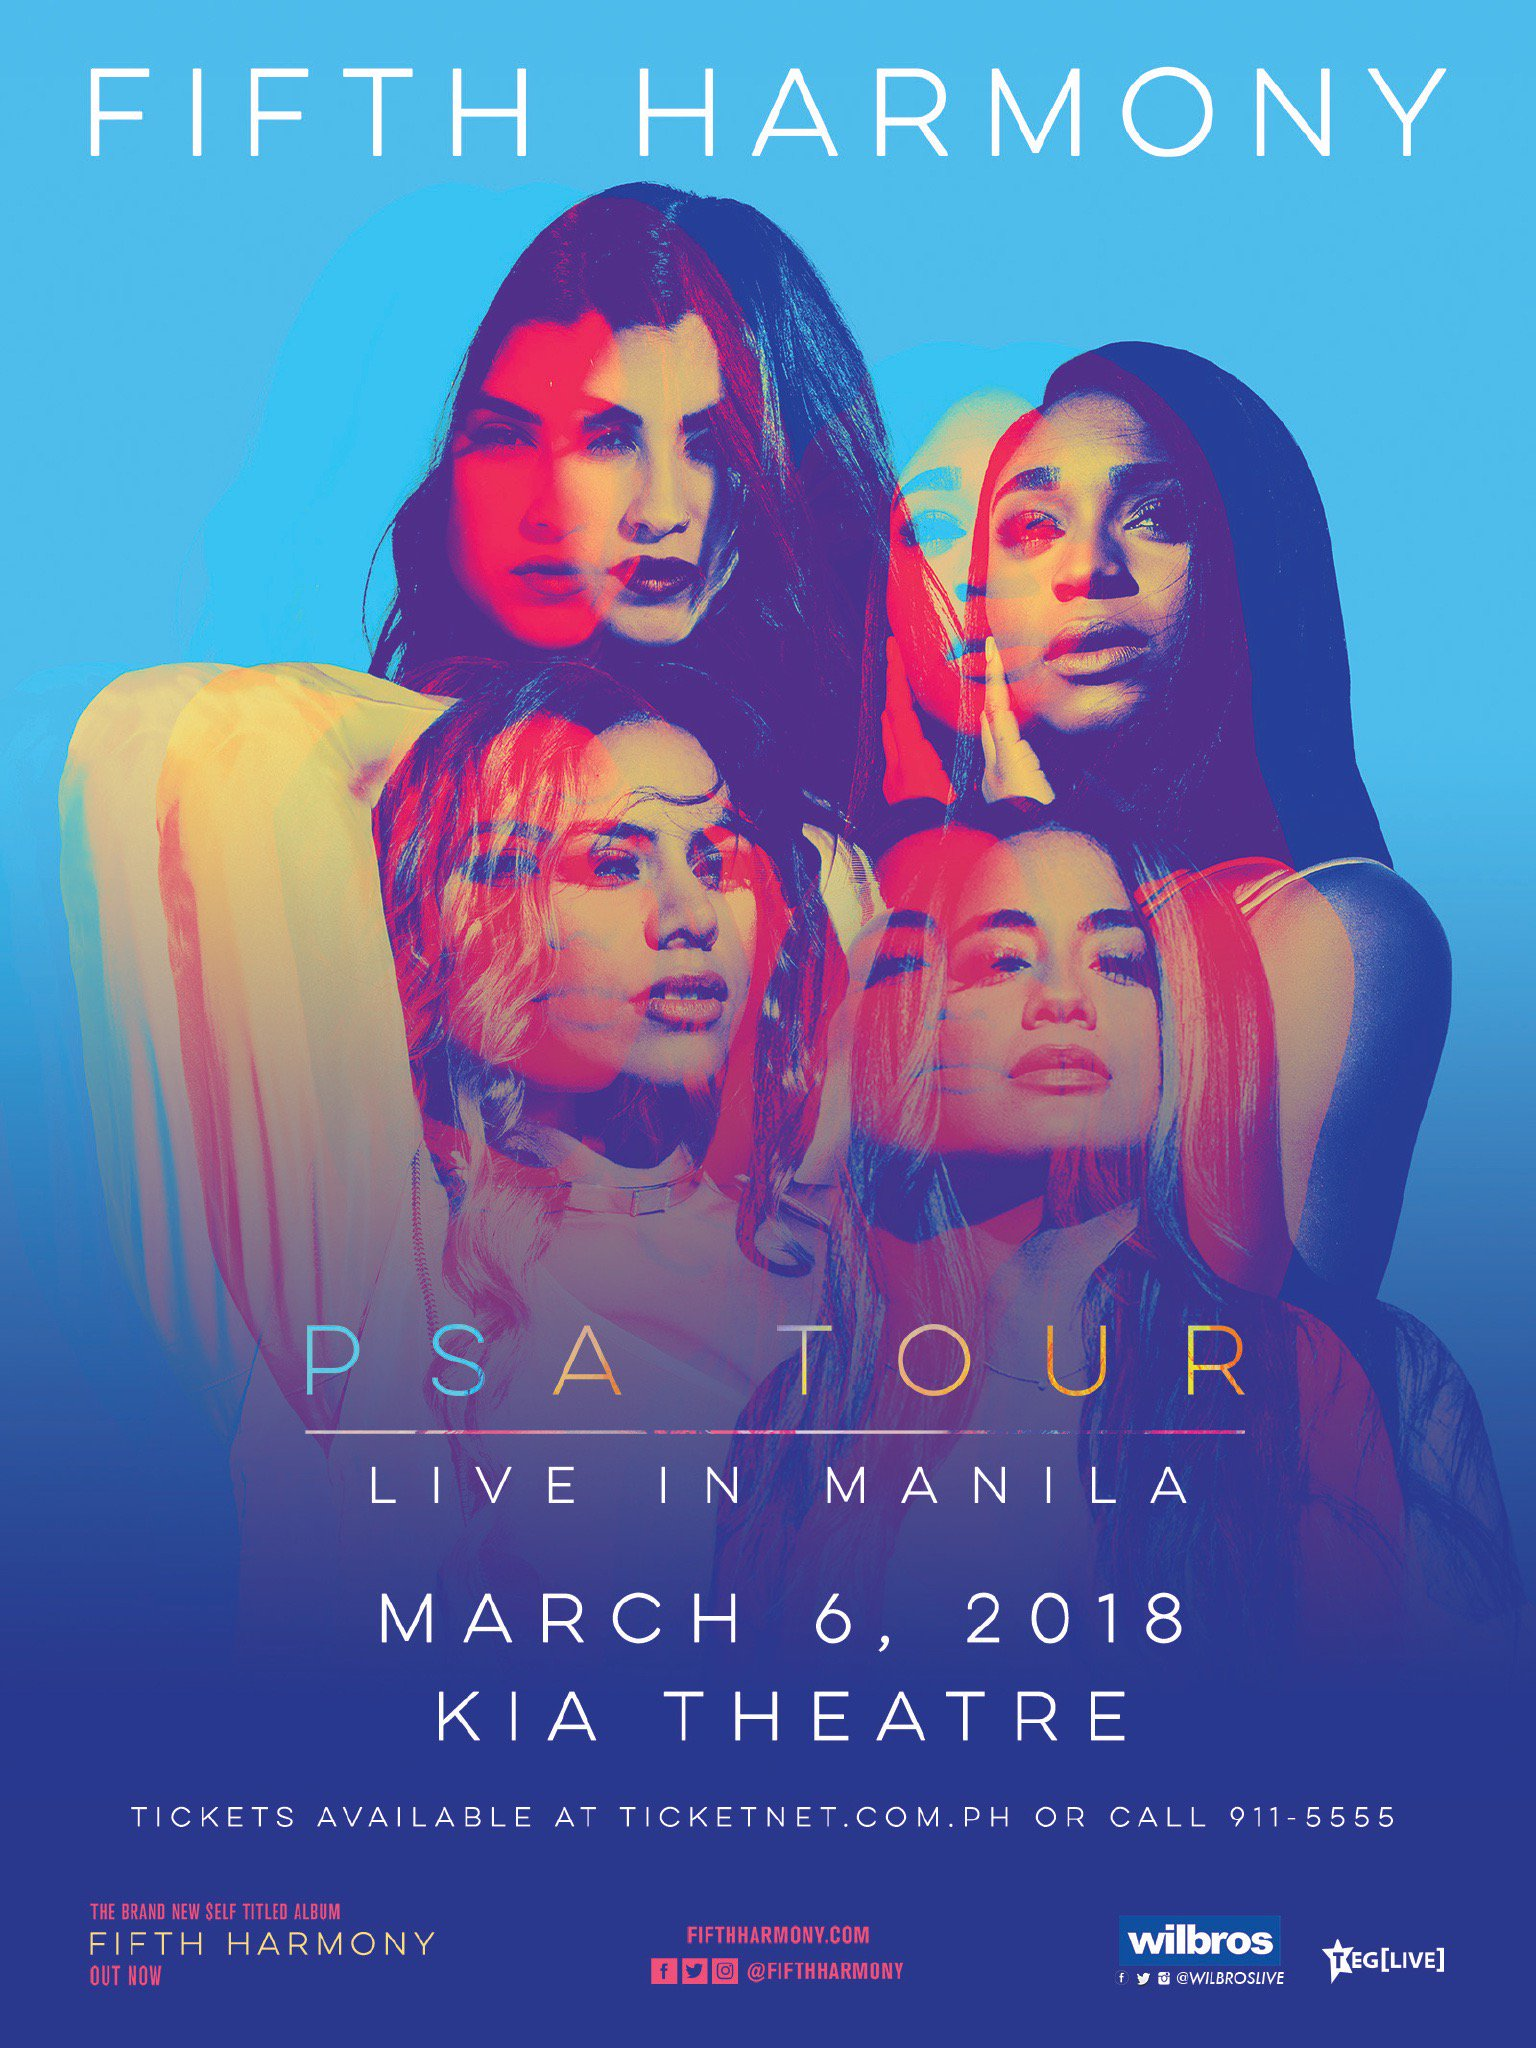 Manila! Your #5HPSATour tickets are on sale! So excited to be coming back �� Get em here: https://t.co/nTiUPvV6rt https://t.co/Uu9bltdrdP